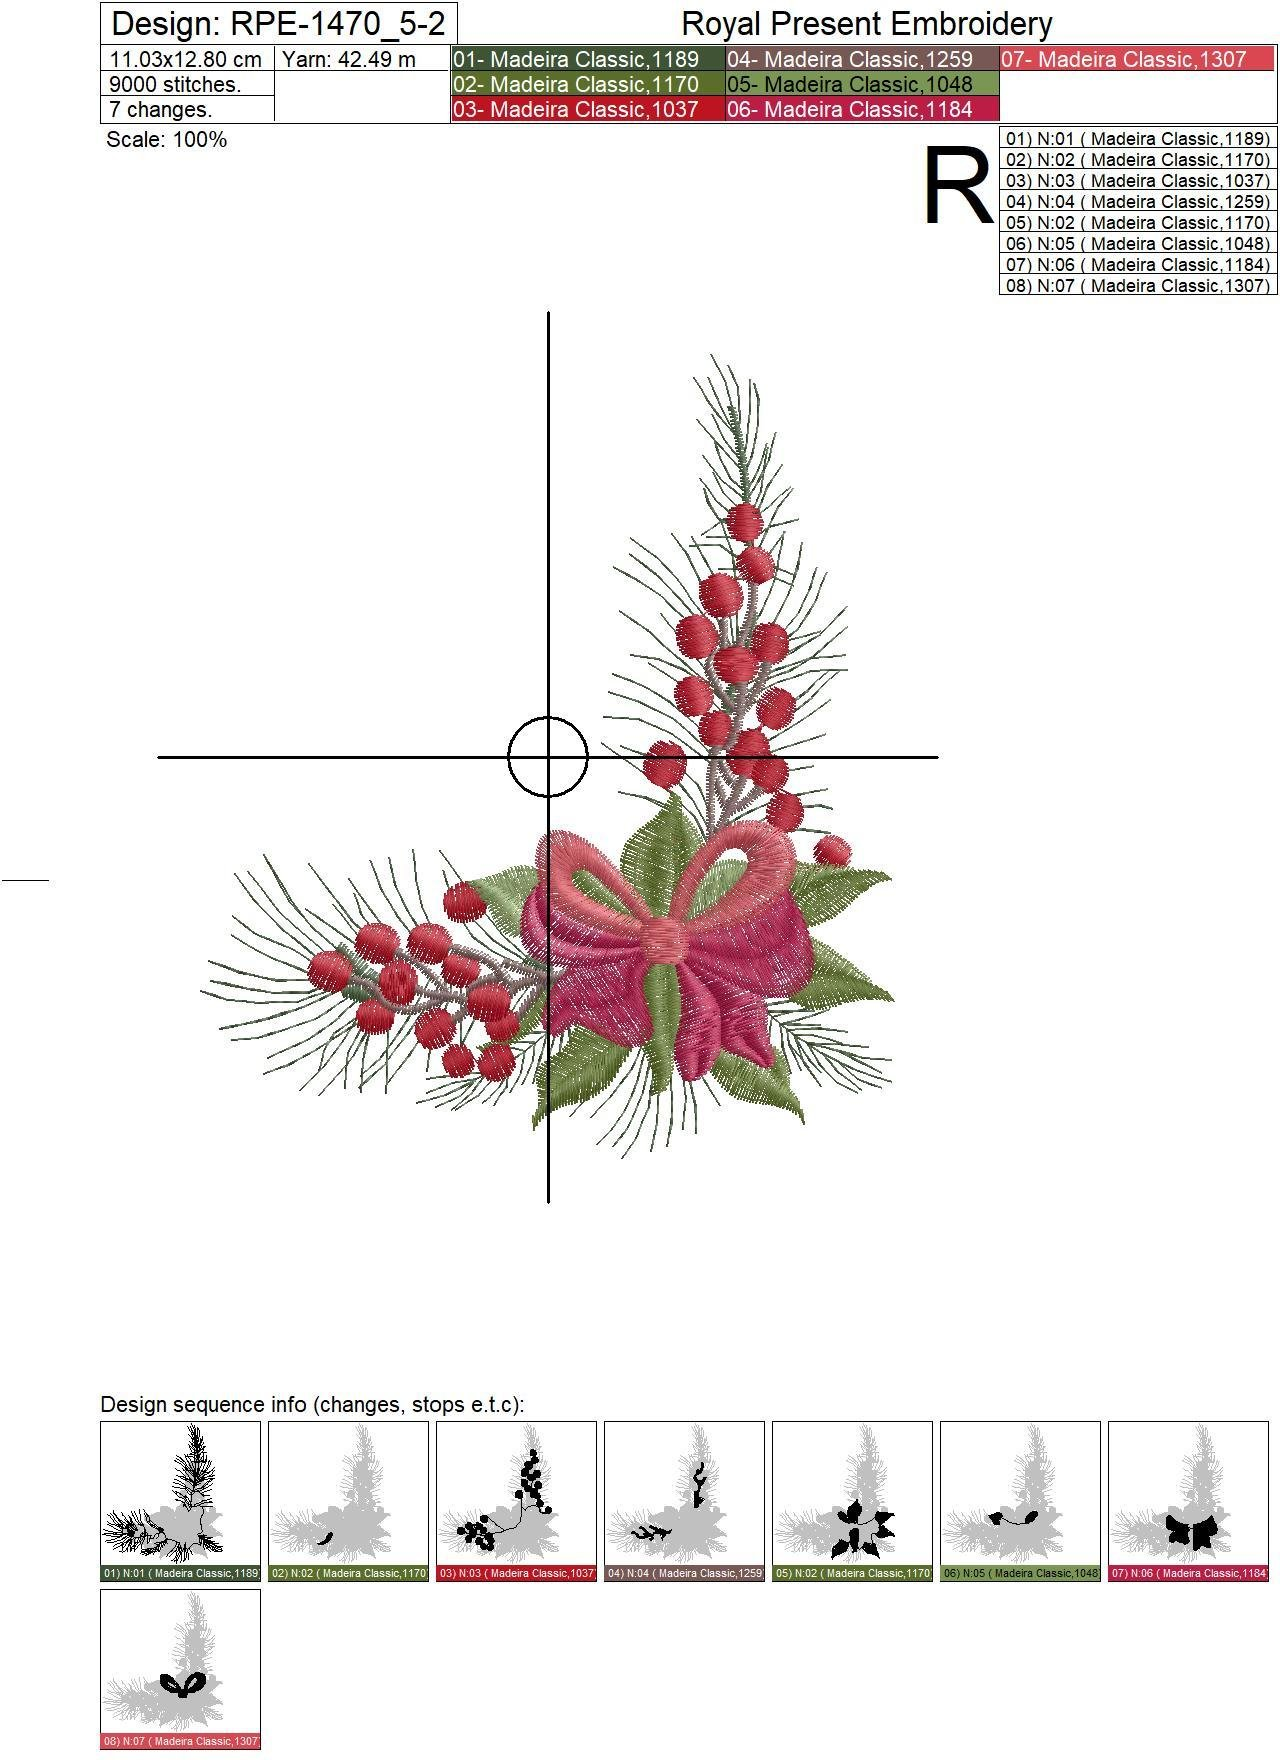 Christmas Corner Embroidery Design with bow - 2 sizes